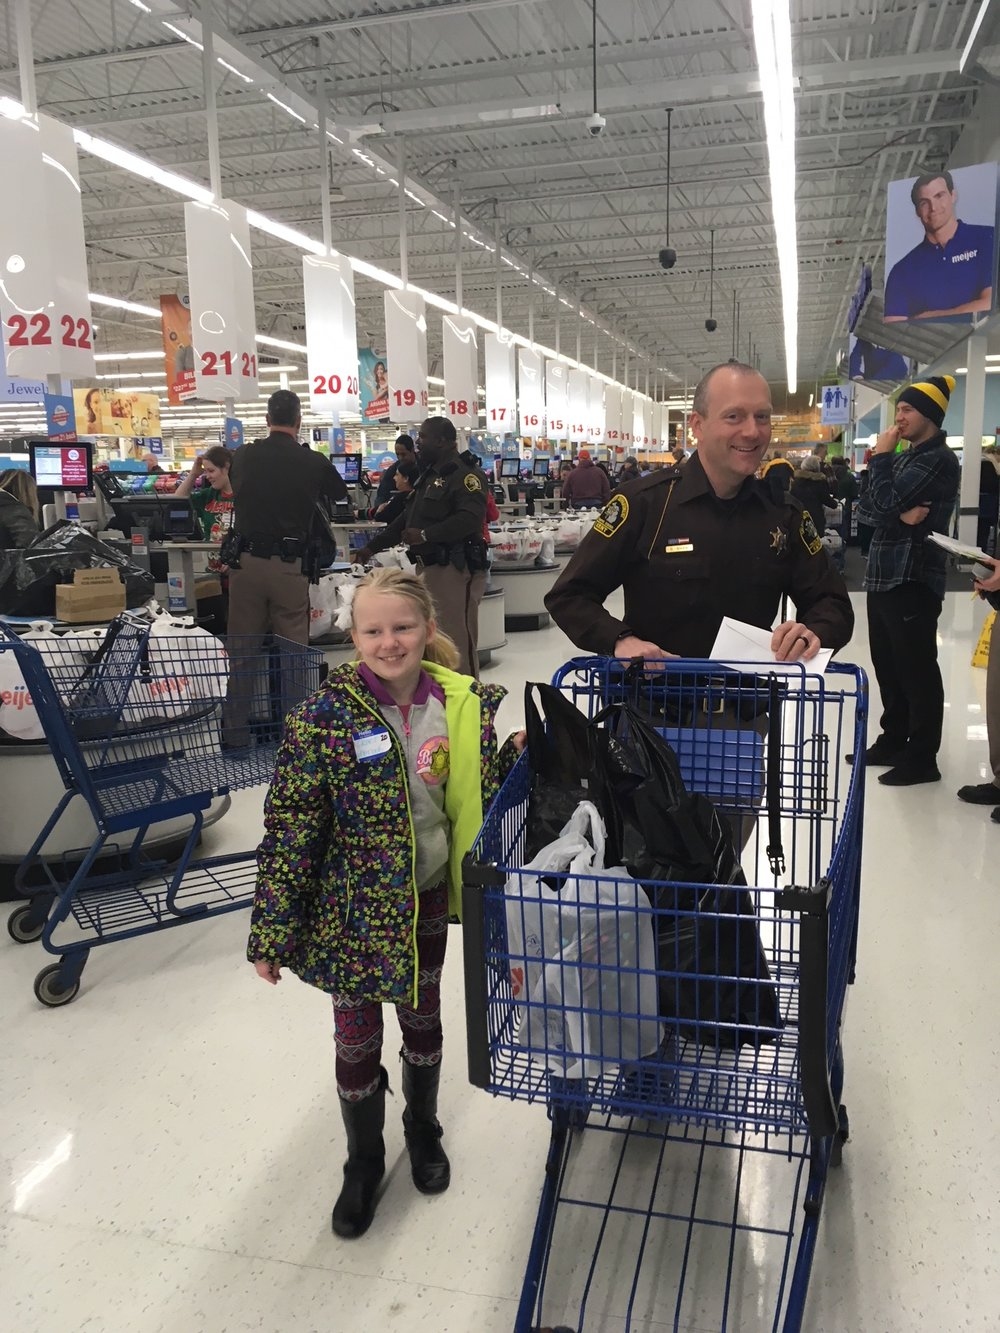 Grace Holbrook with Deputy Scott Shaw are all smiles after shopping.